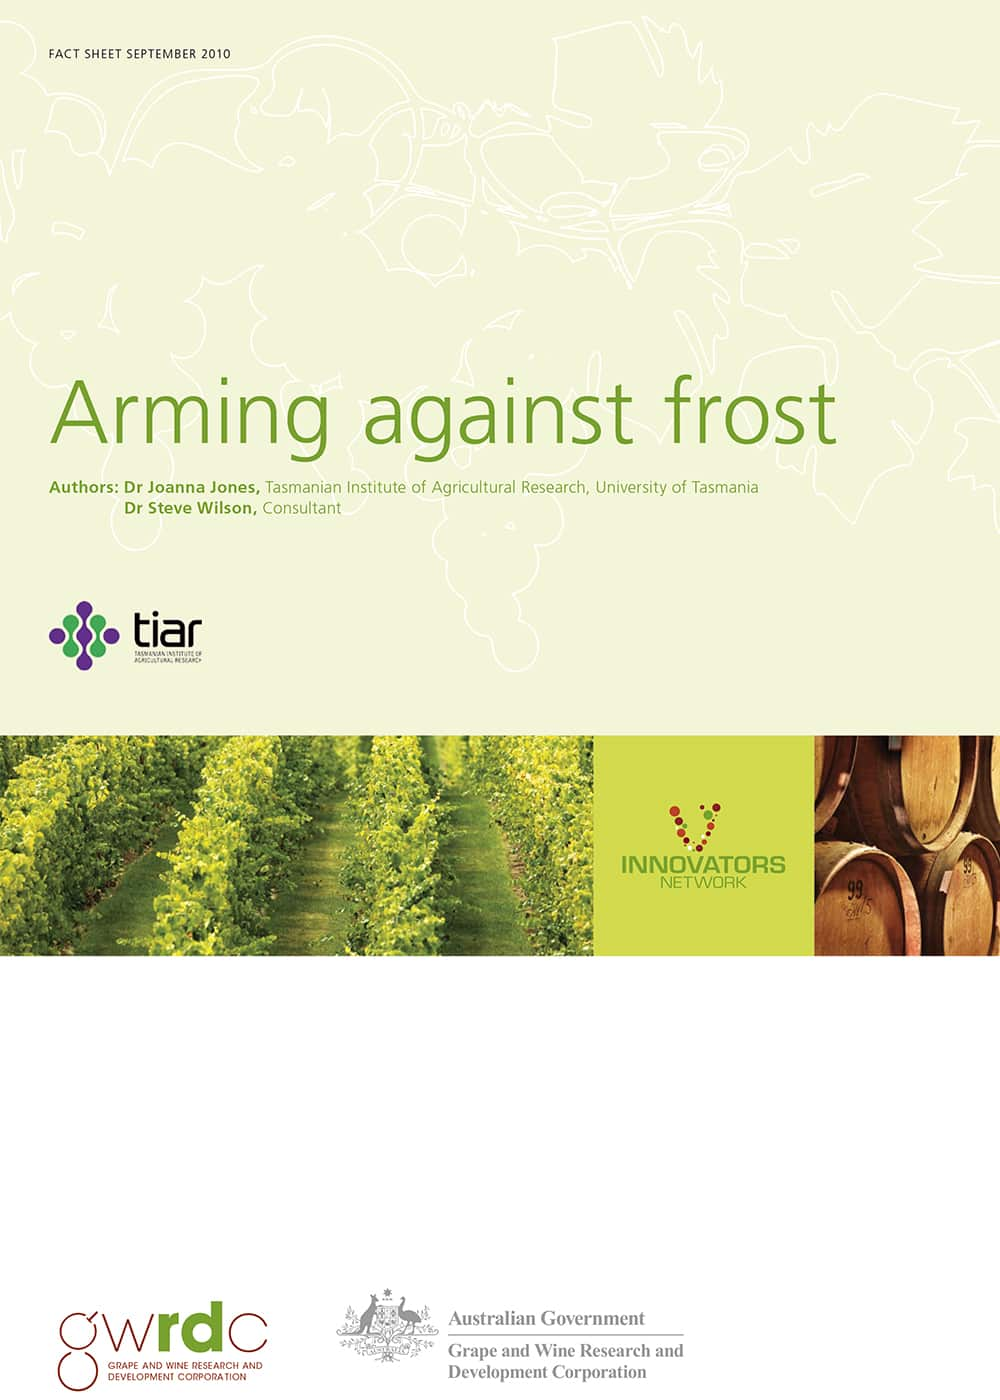 Arming against frost